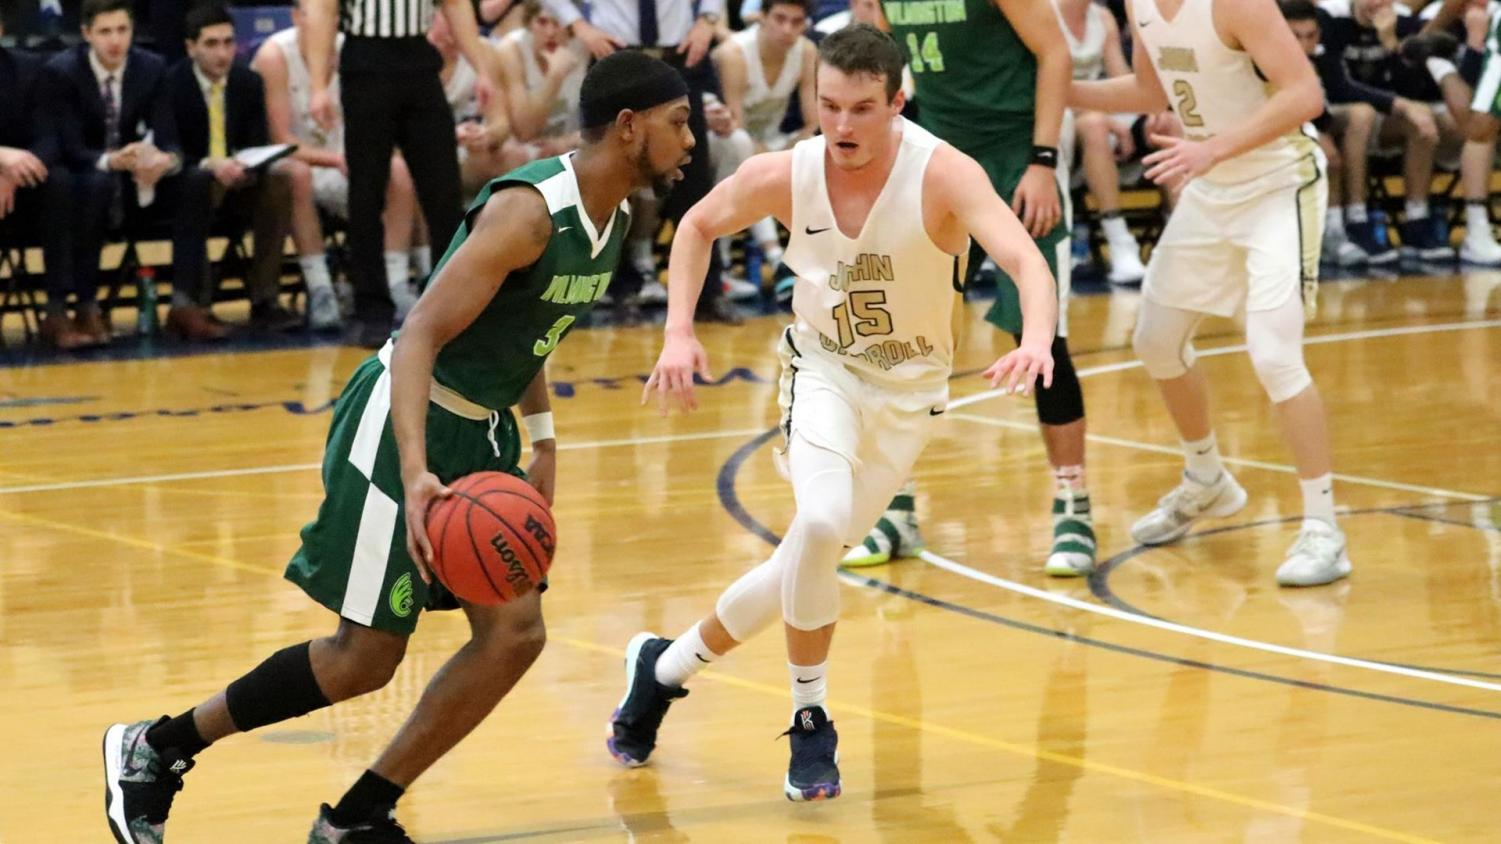 Jackson Sartain '21 guards a Wilmington player in a game on Feb. 16, 2019.